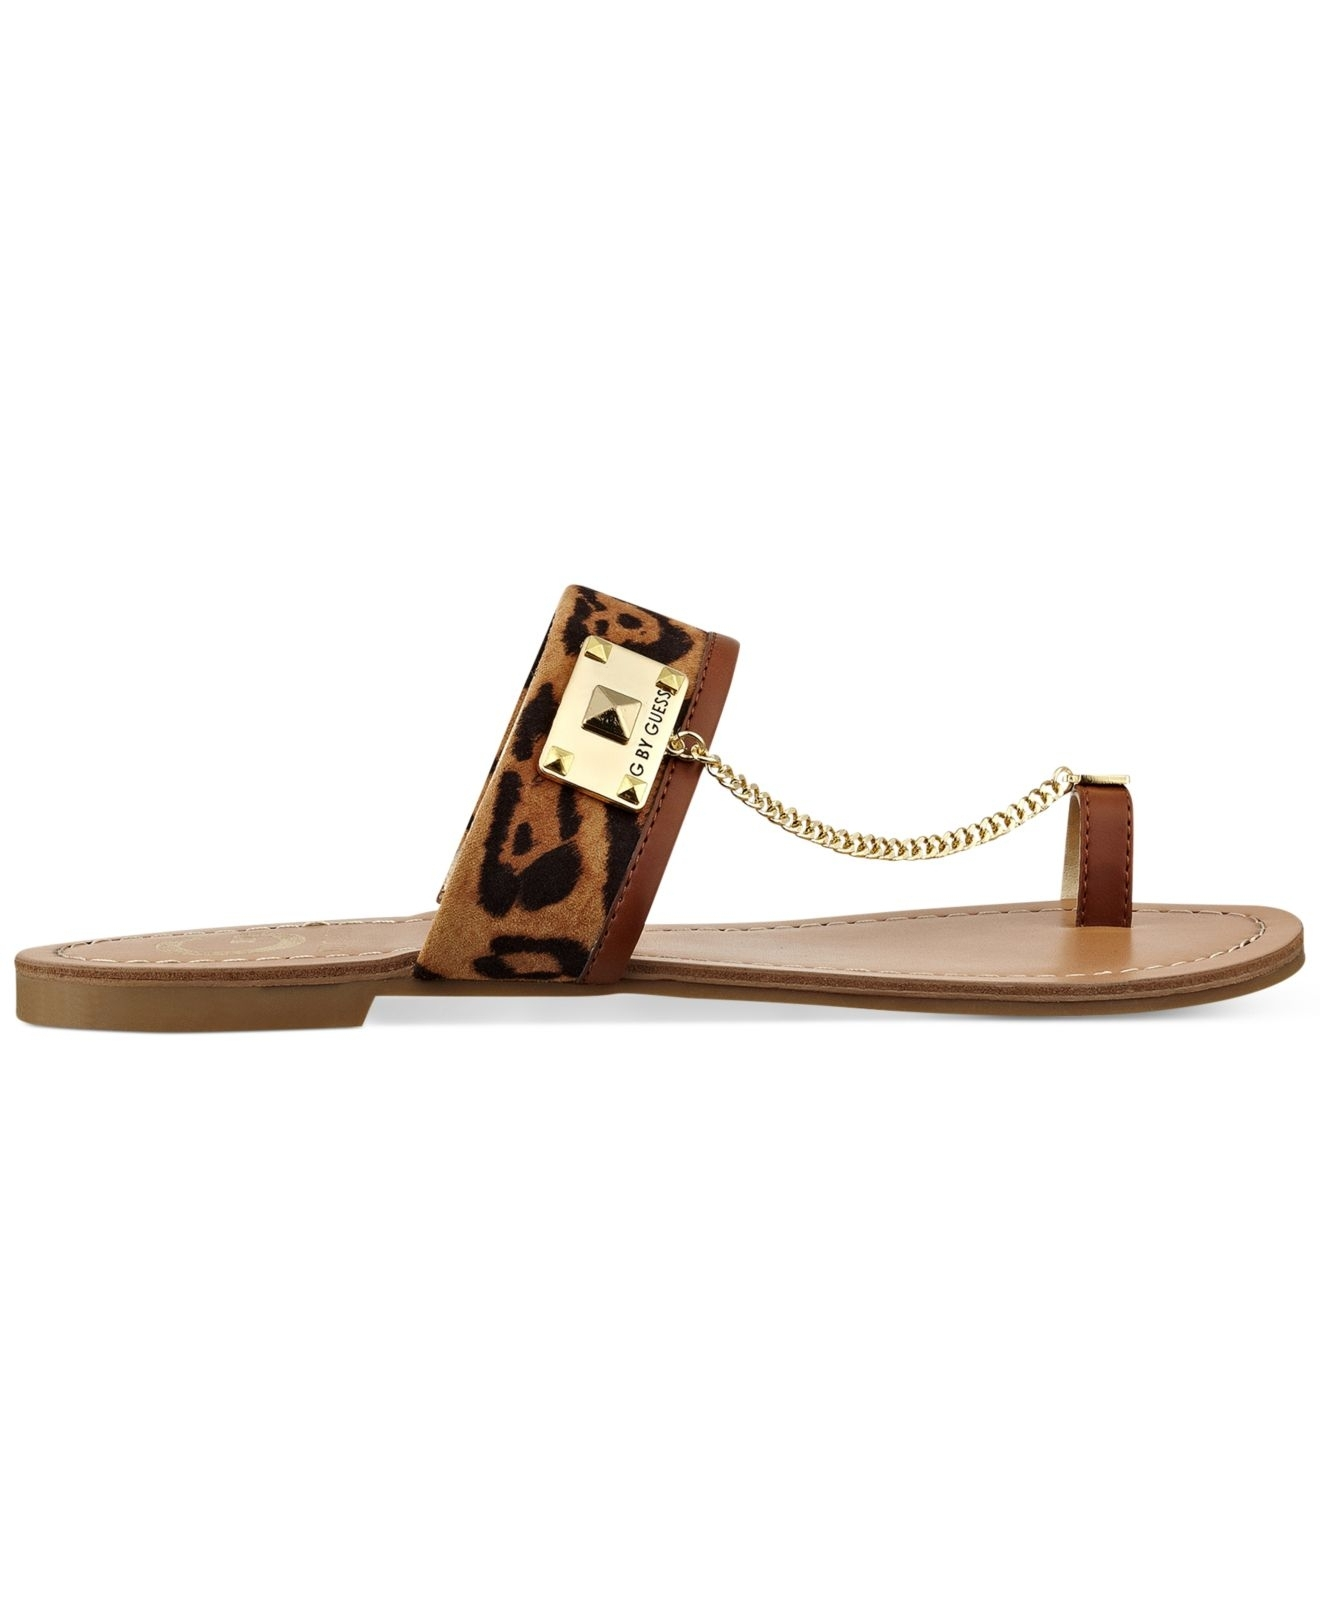 Lyst – Gguess Women's Lucia Toe Ring Flat Sandals Pertaining To Most Popular Macy's Toe Rings (View 10 of 15)